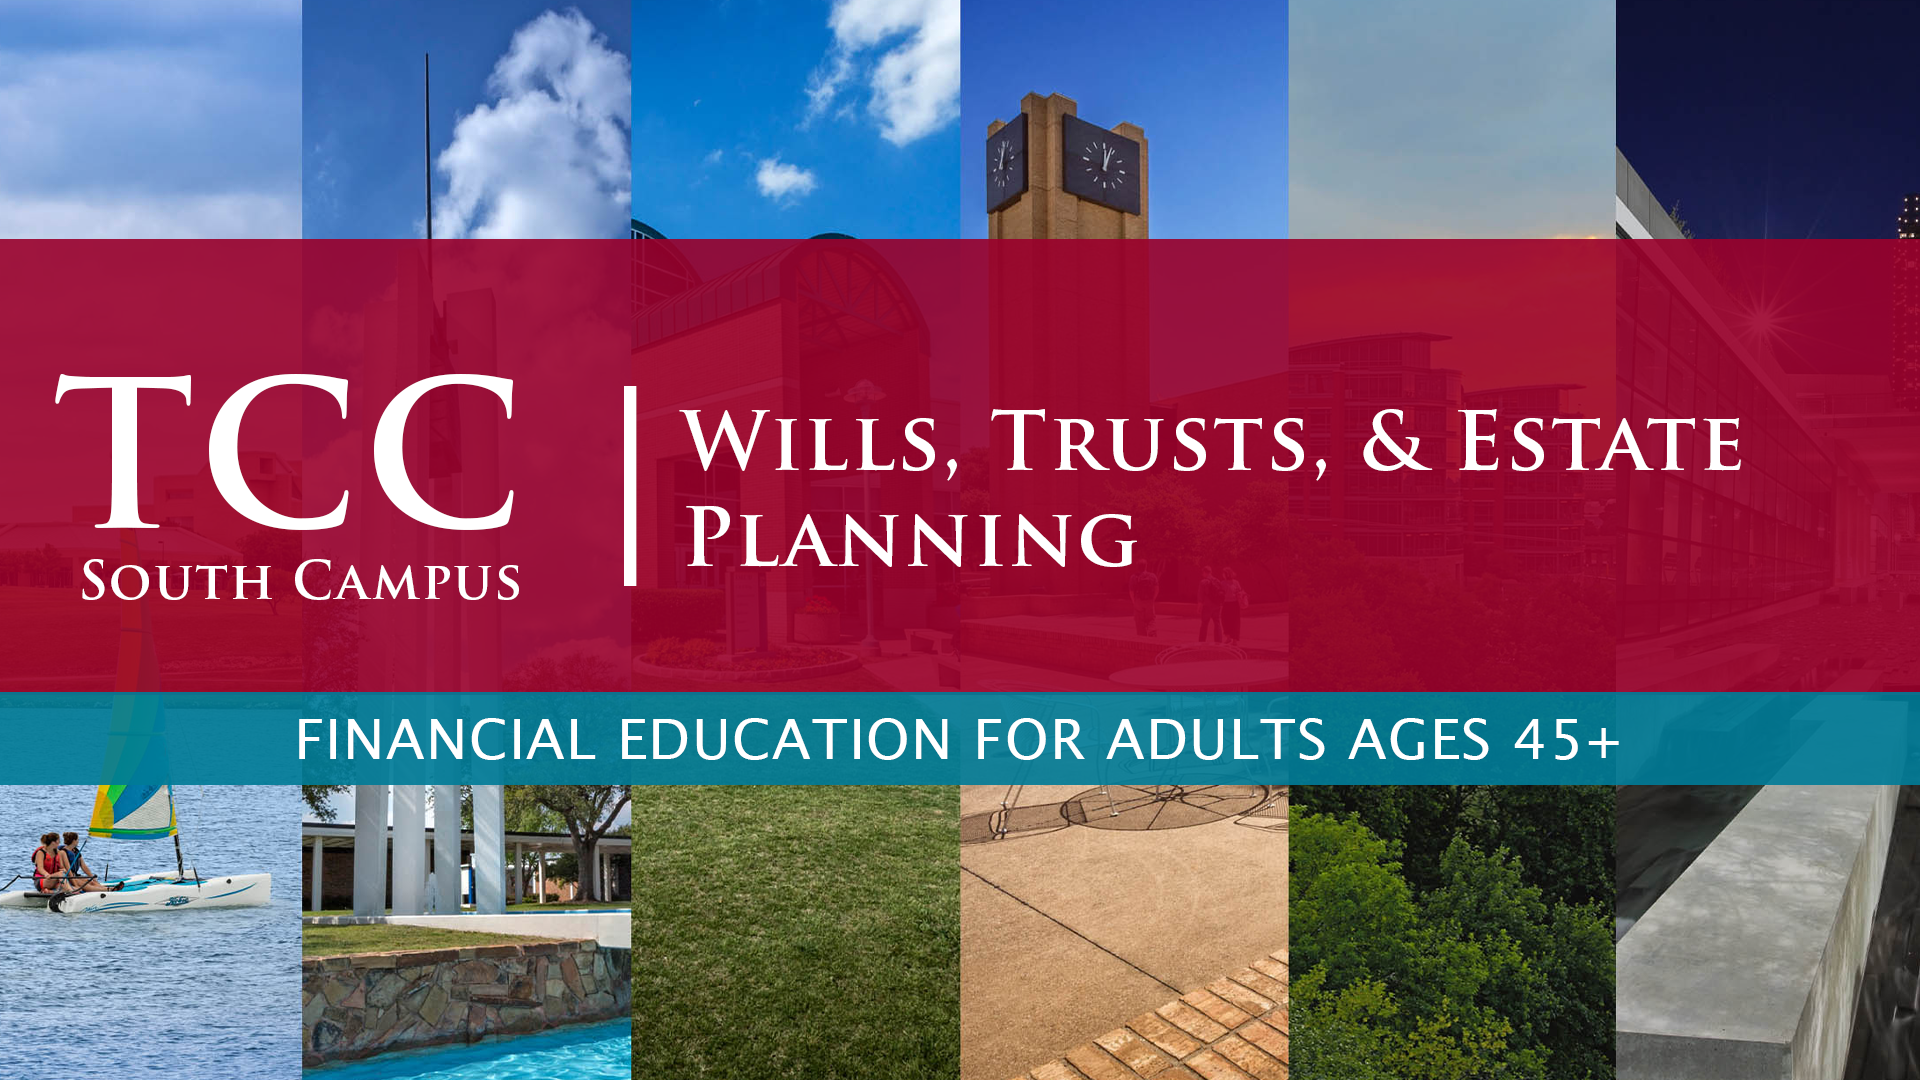 Wills, Trusts, & Estate Planning Course Tarrant County County College South Campus